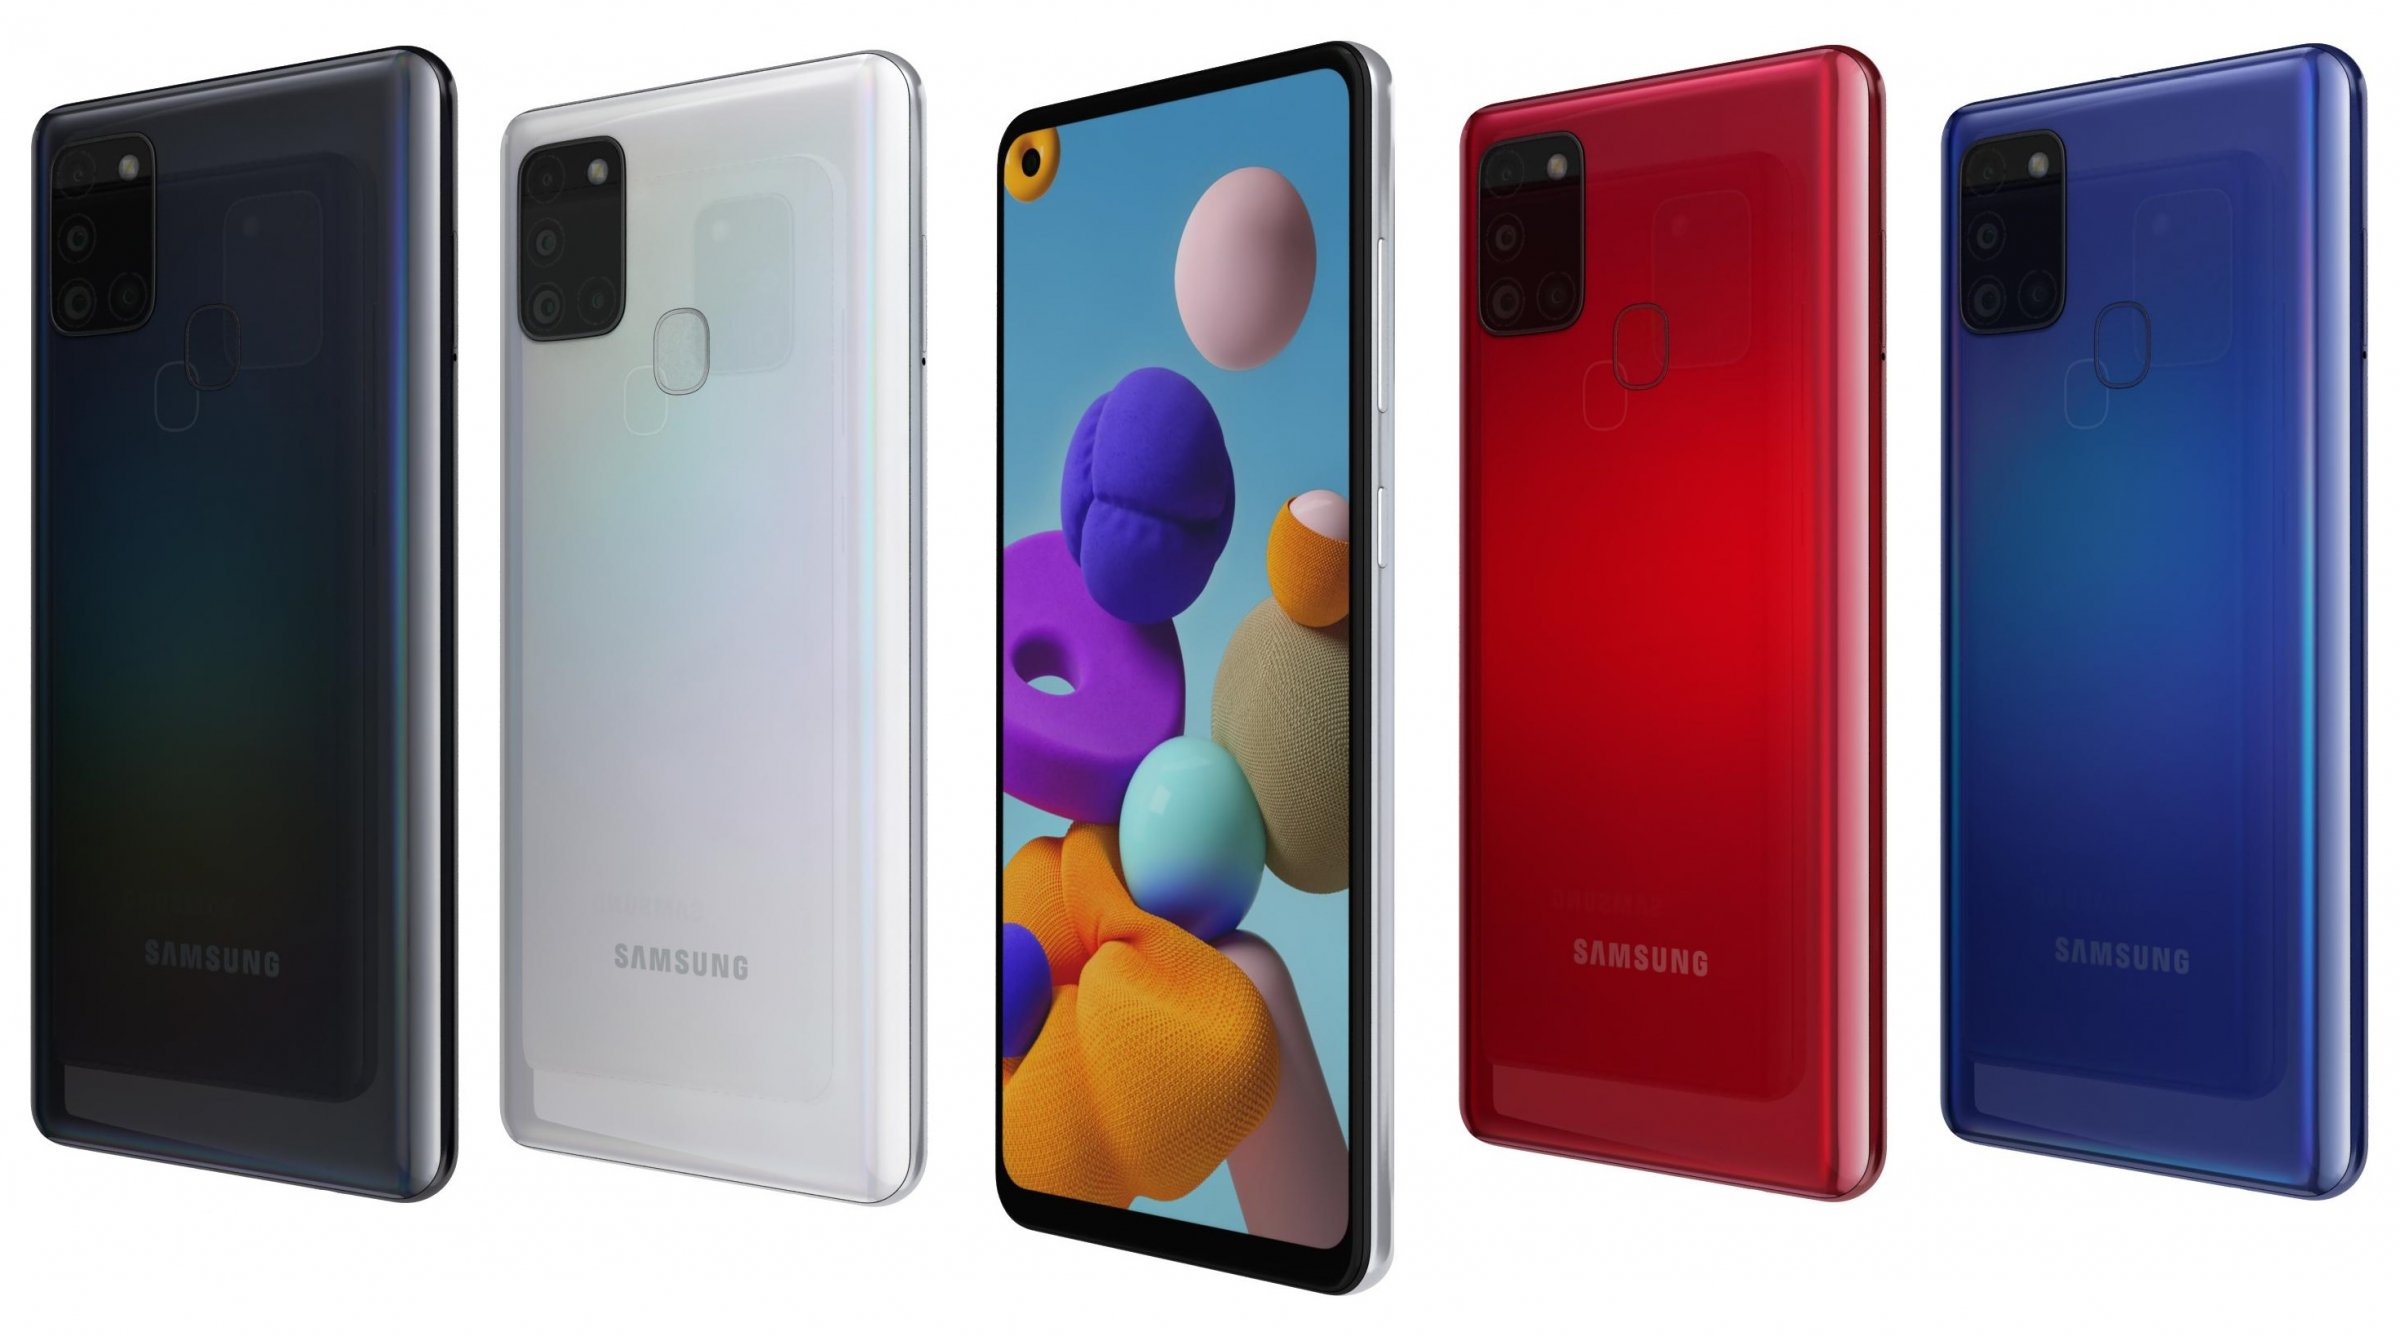 samsung-galaxy-a21s-all-colors-01